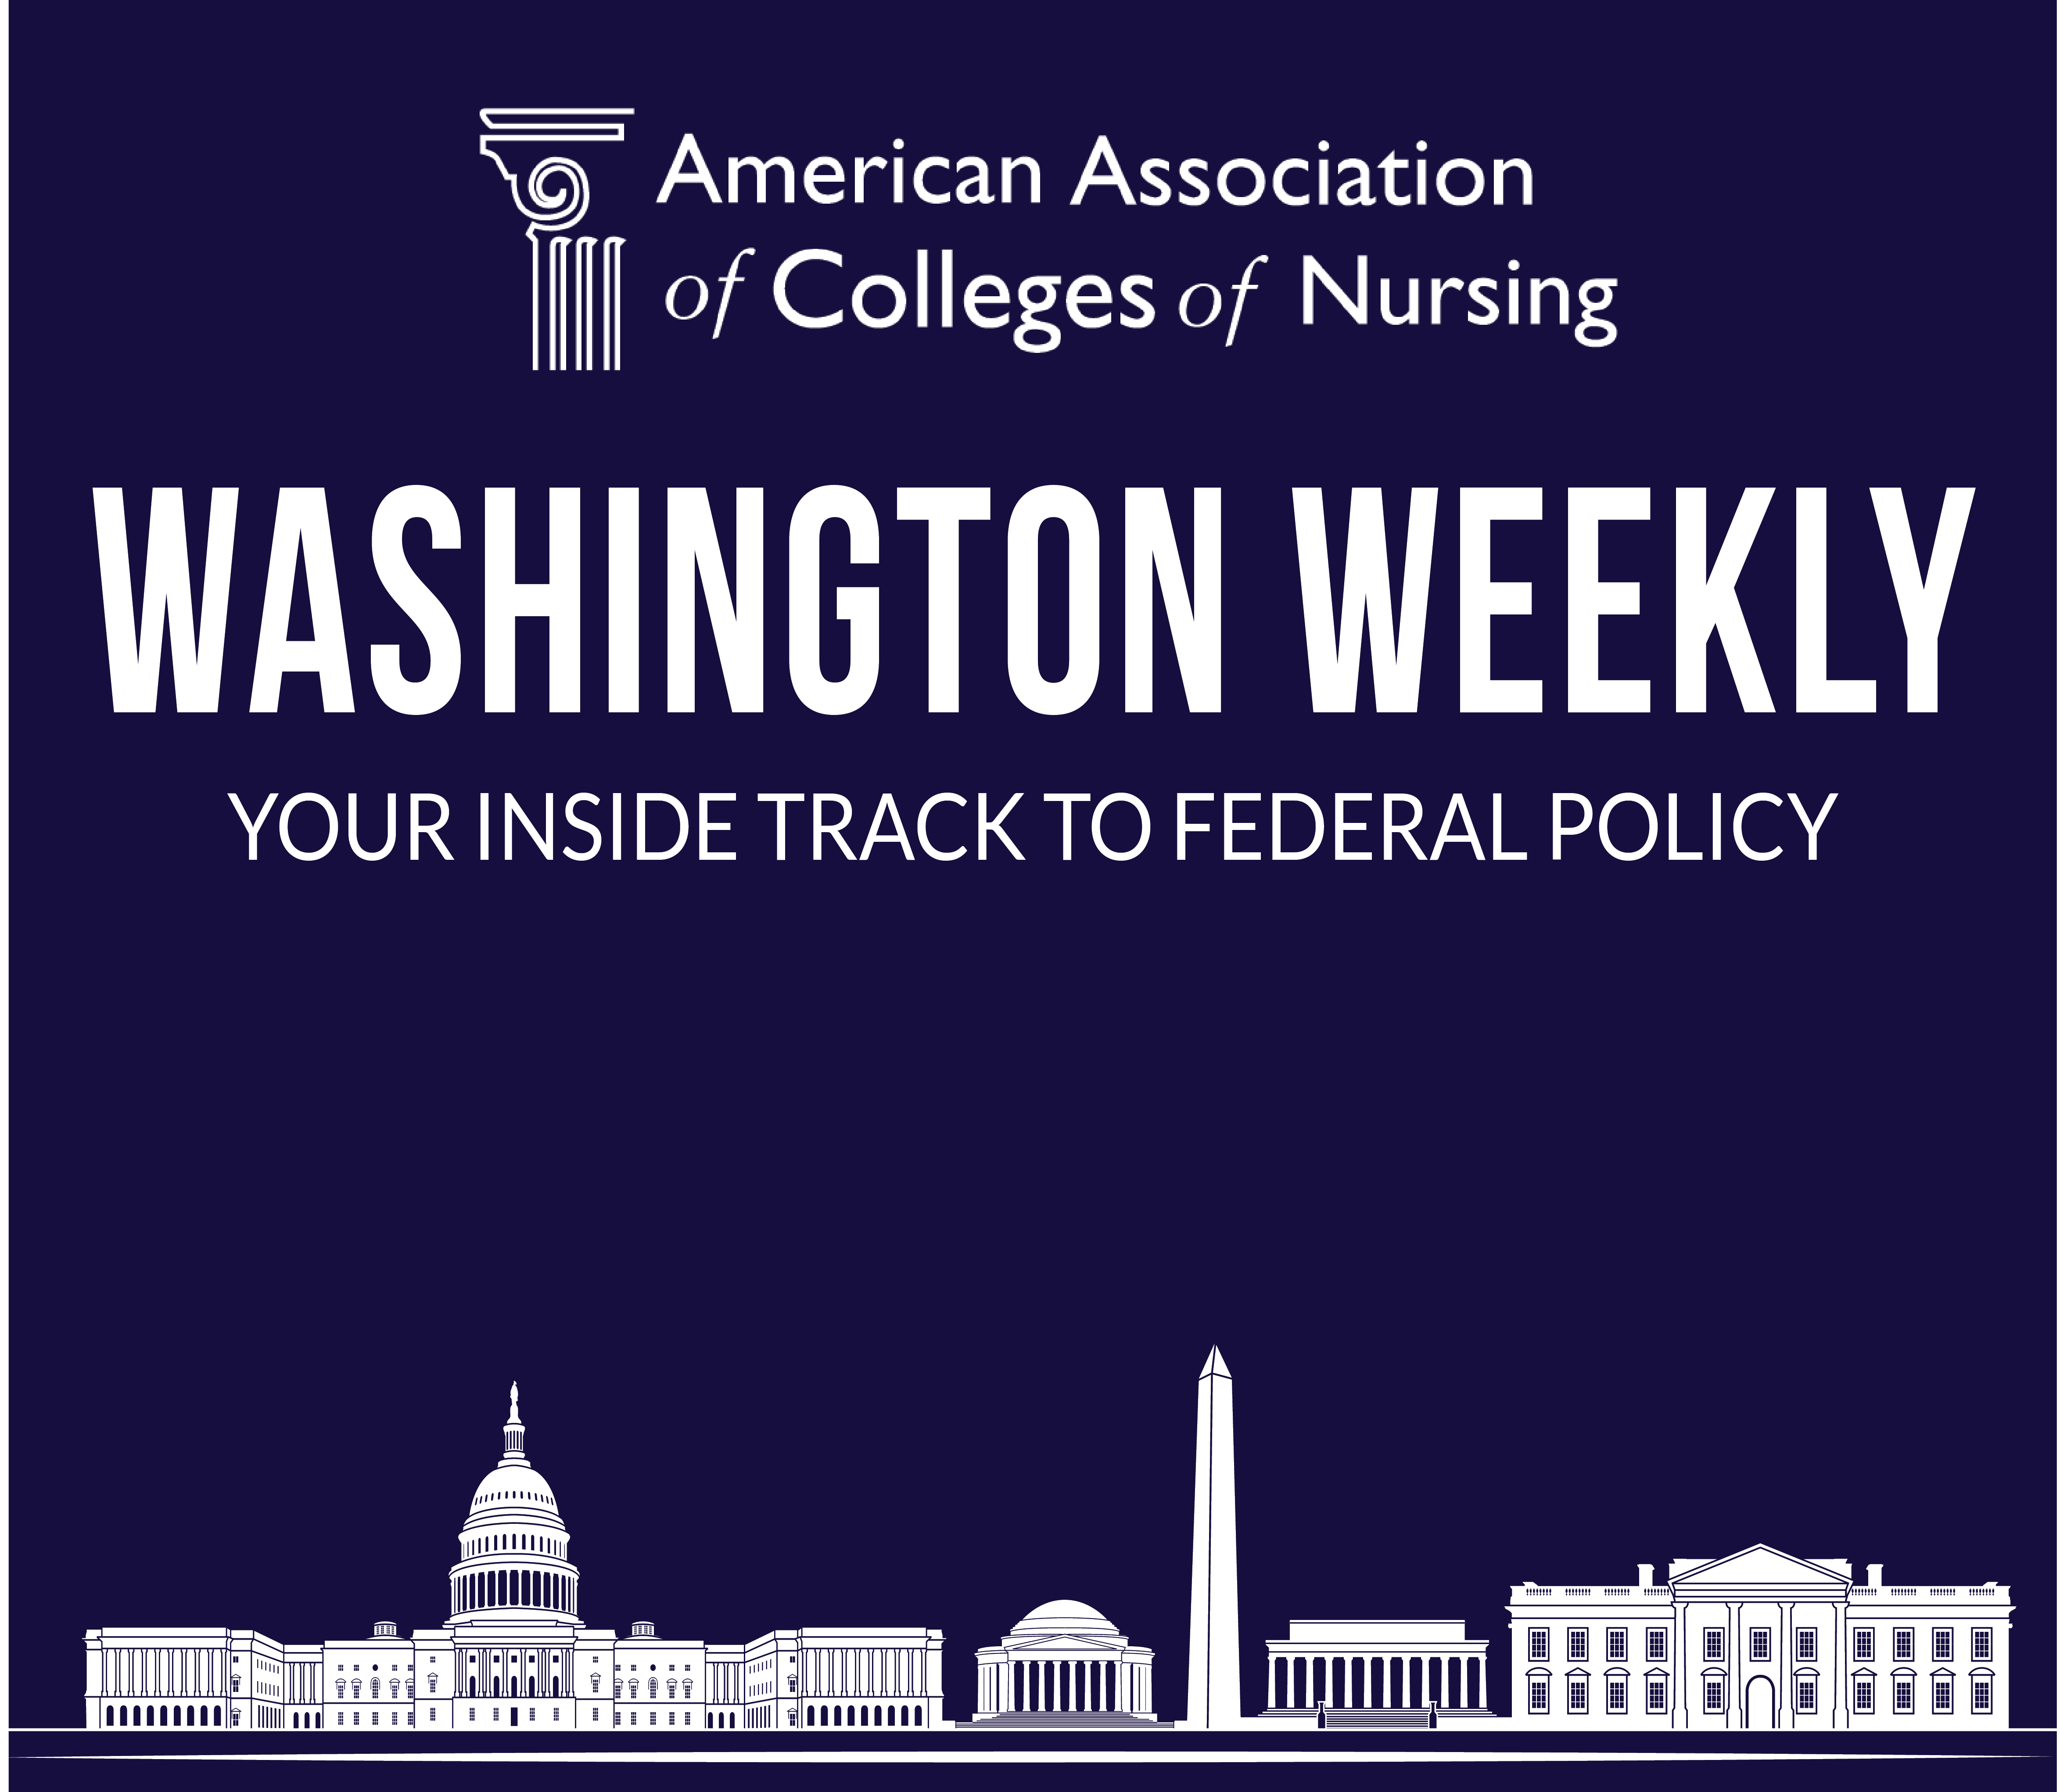 AACN Logo - Washington Weekly - Your Inside Track to Federal Policy